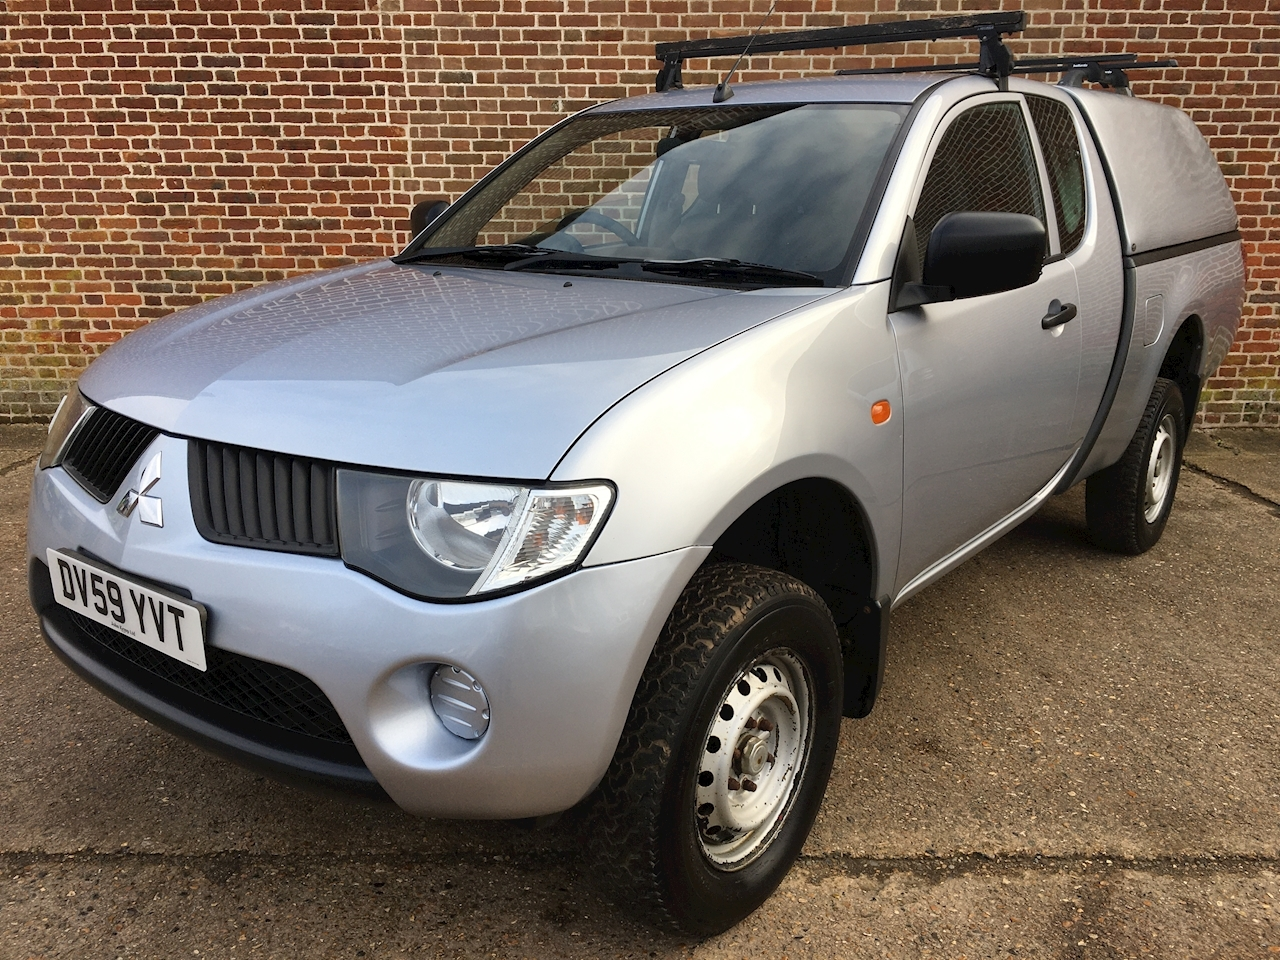 Mitsubishi L200 Di-D 4X4 4Work C/C Pick-Up 2.5 Manual Diesel